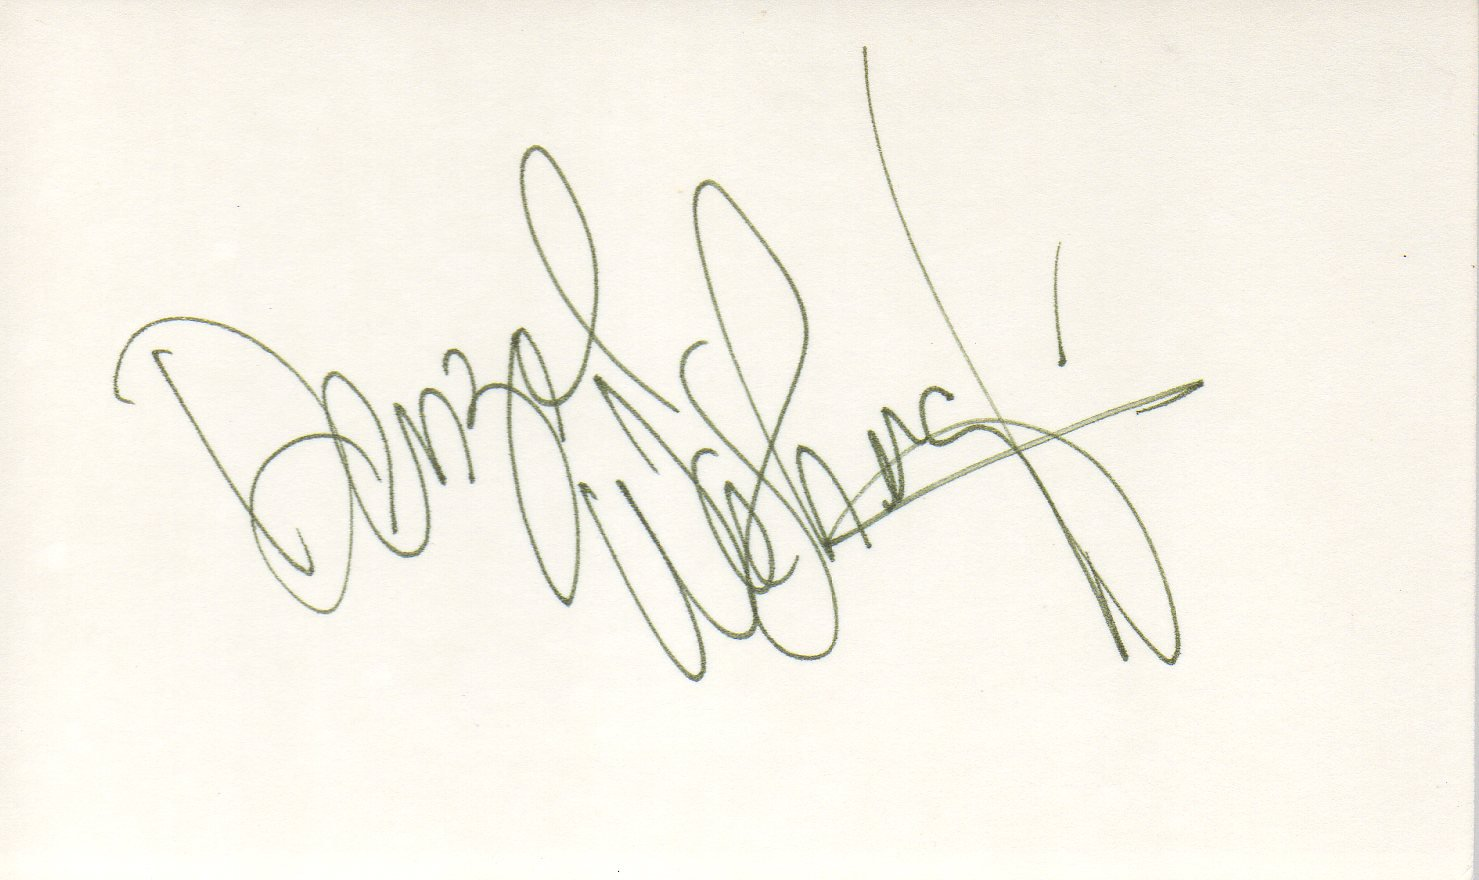 Denzel Washington hand signed 3x5 card